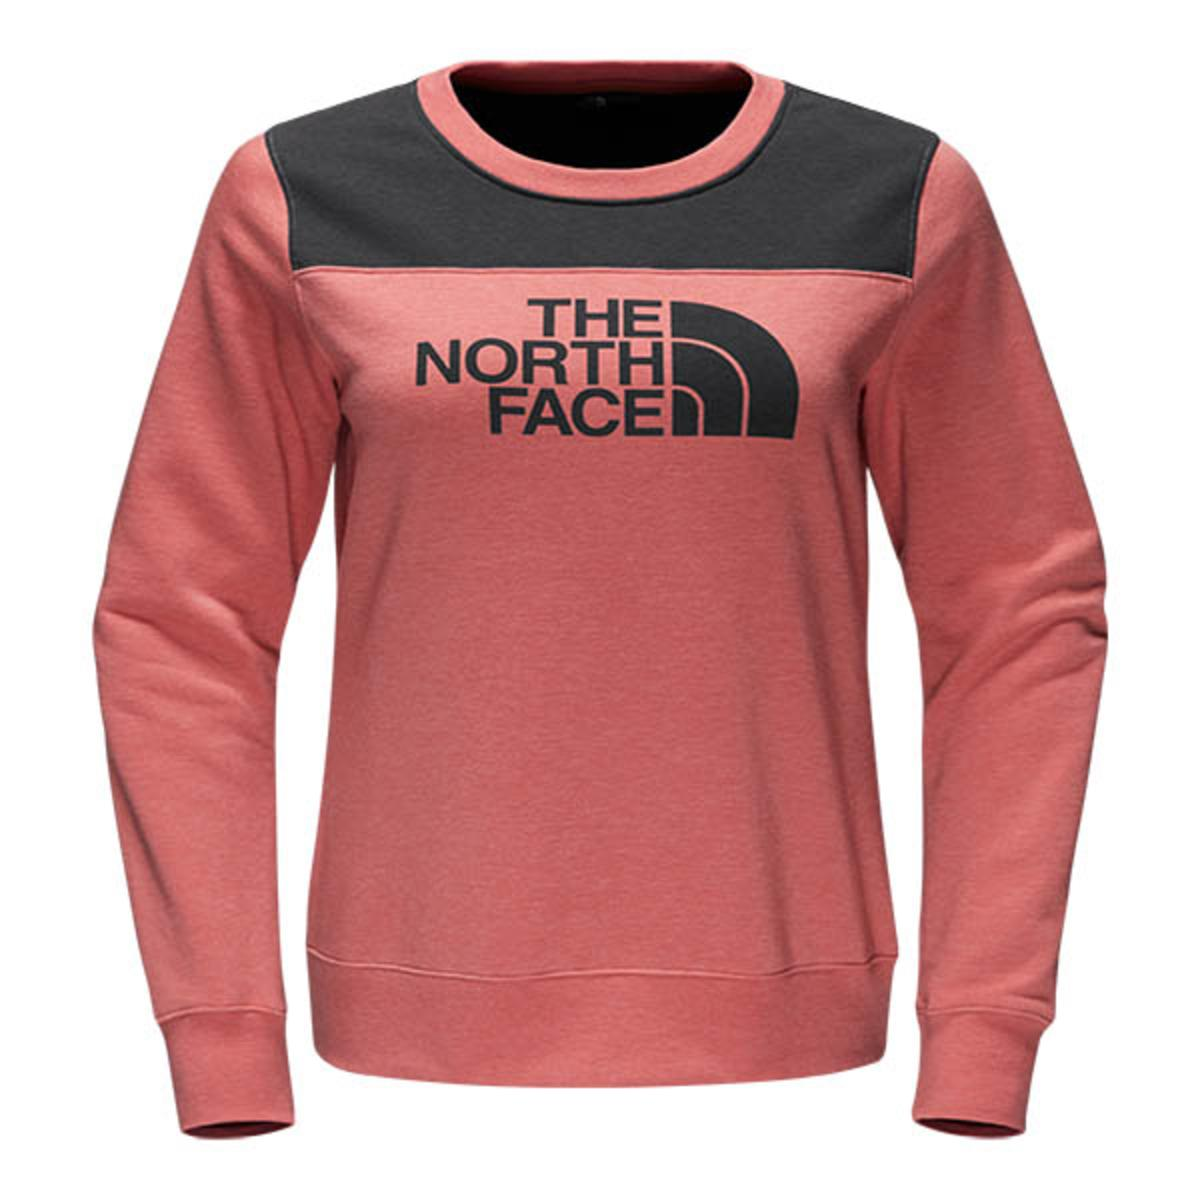 a4f4c3f69 The North Face Women's Half Dome Fleece Crew | Conquer the Cold with ...